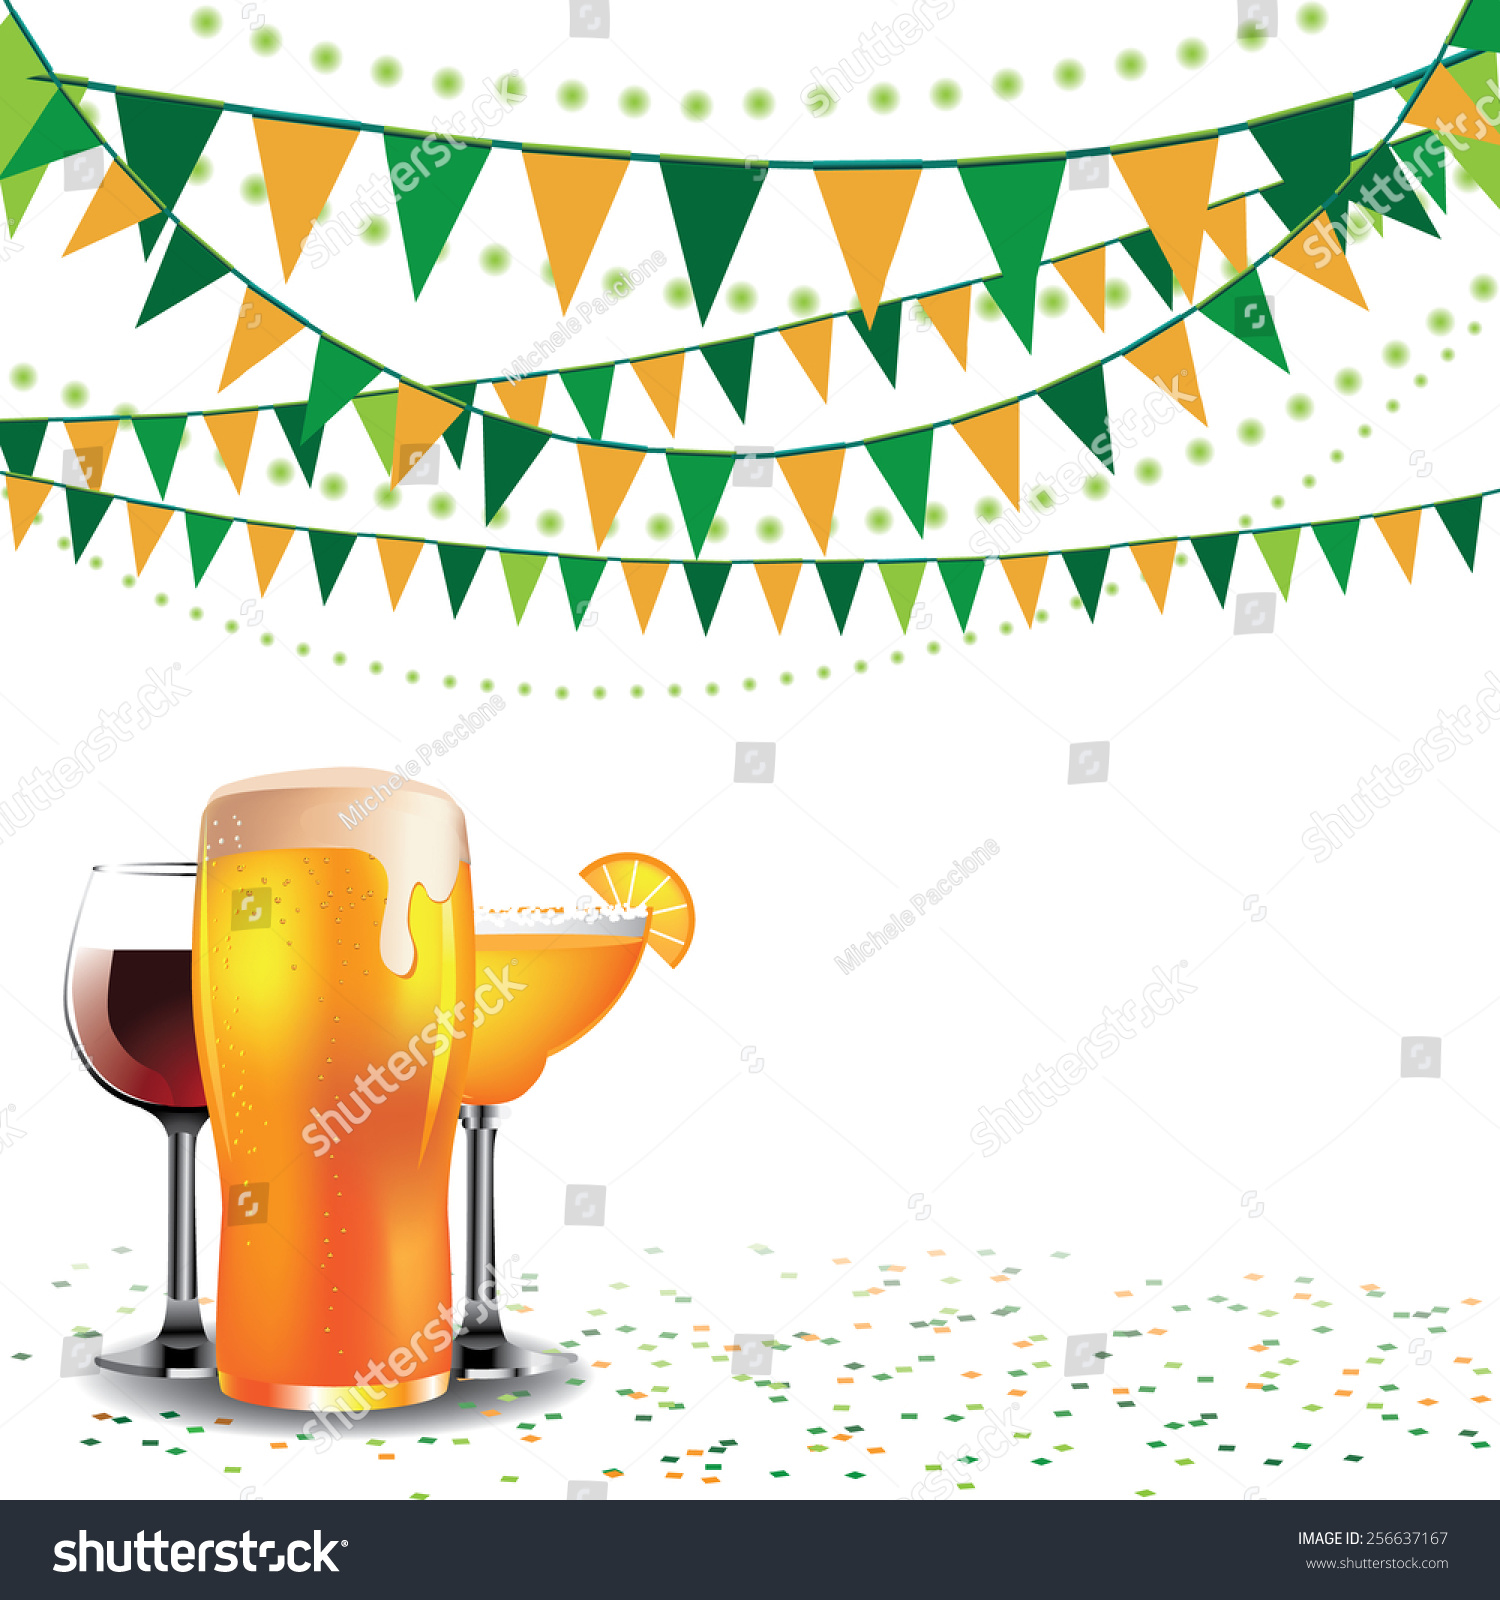 happy hour drinks bunting background ads stock vector 256637167 happy hour drinks bunting background for ads flier signage promotion greeting card